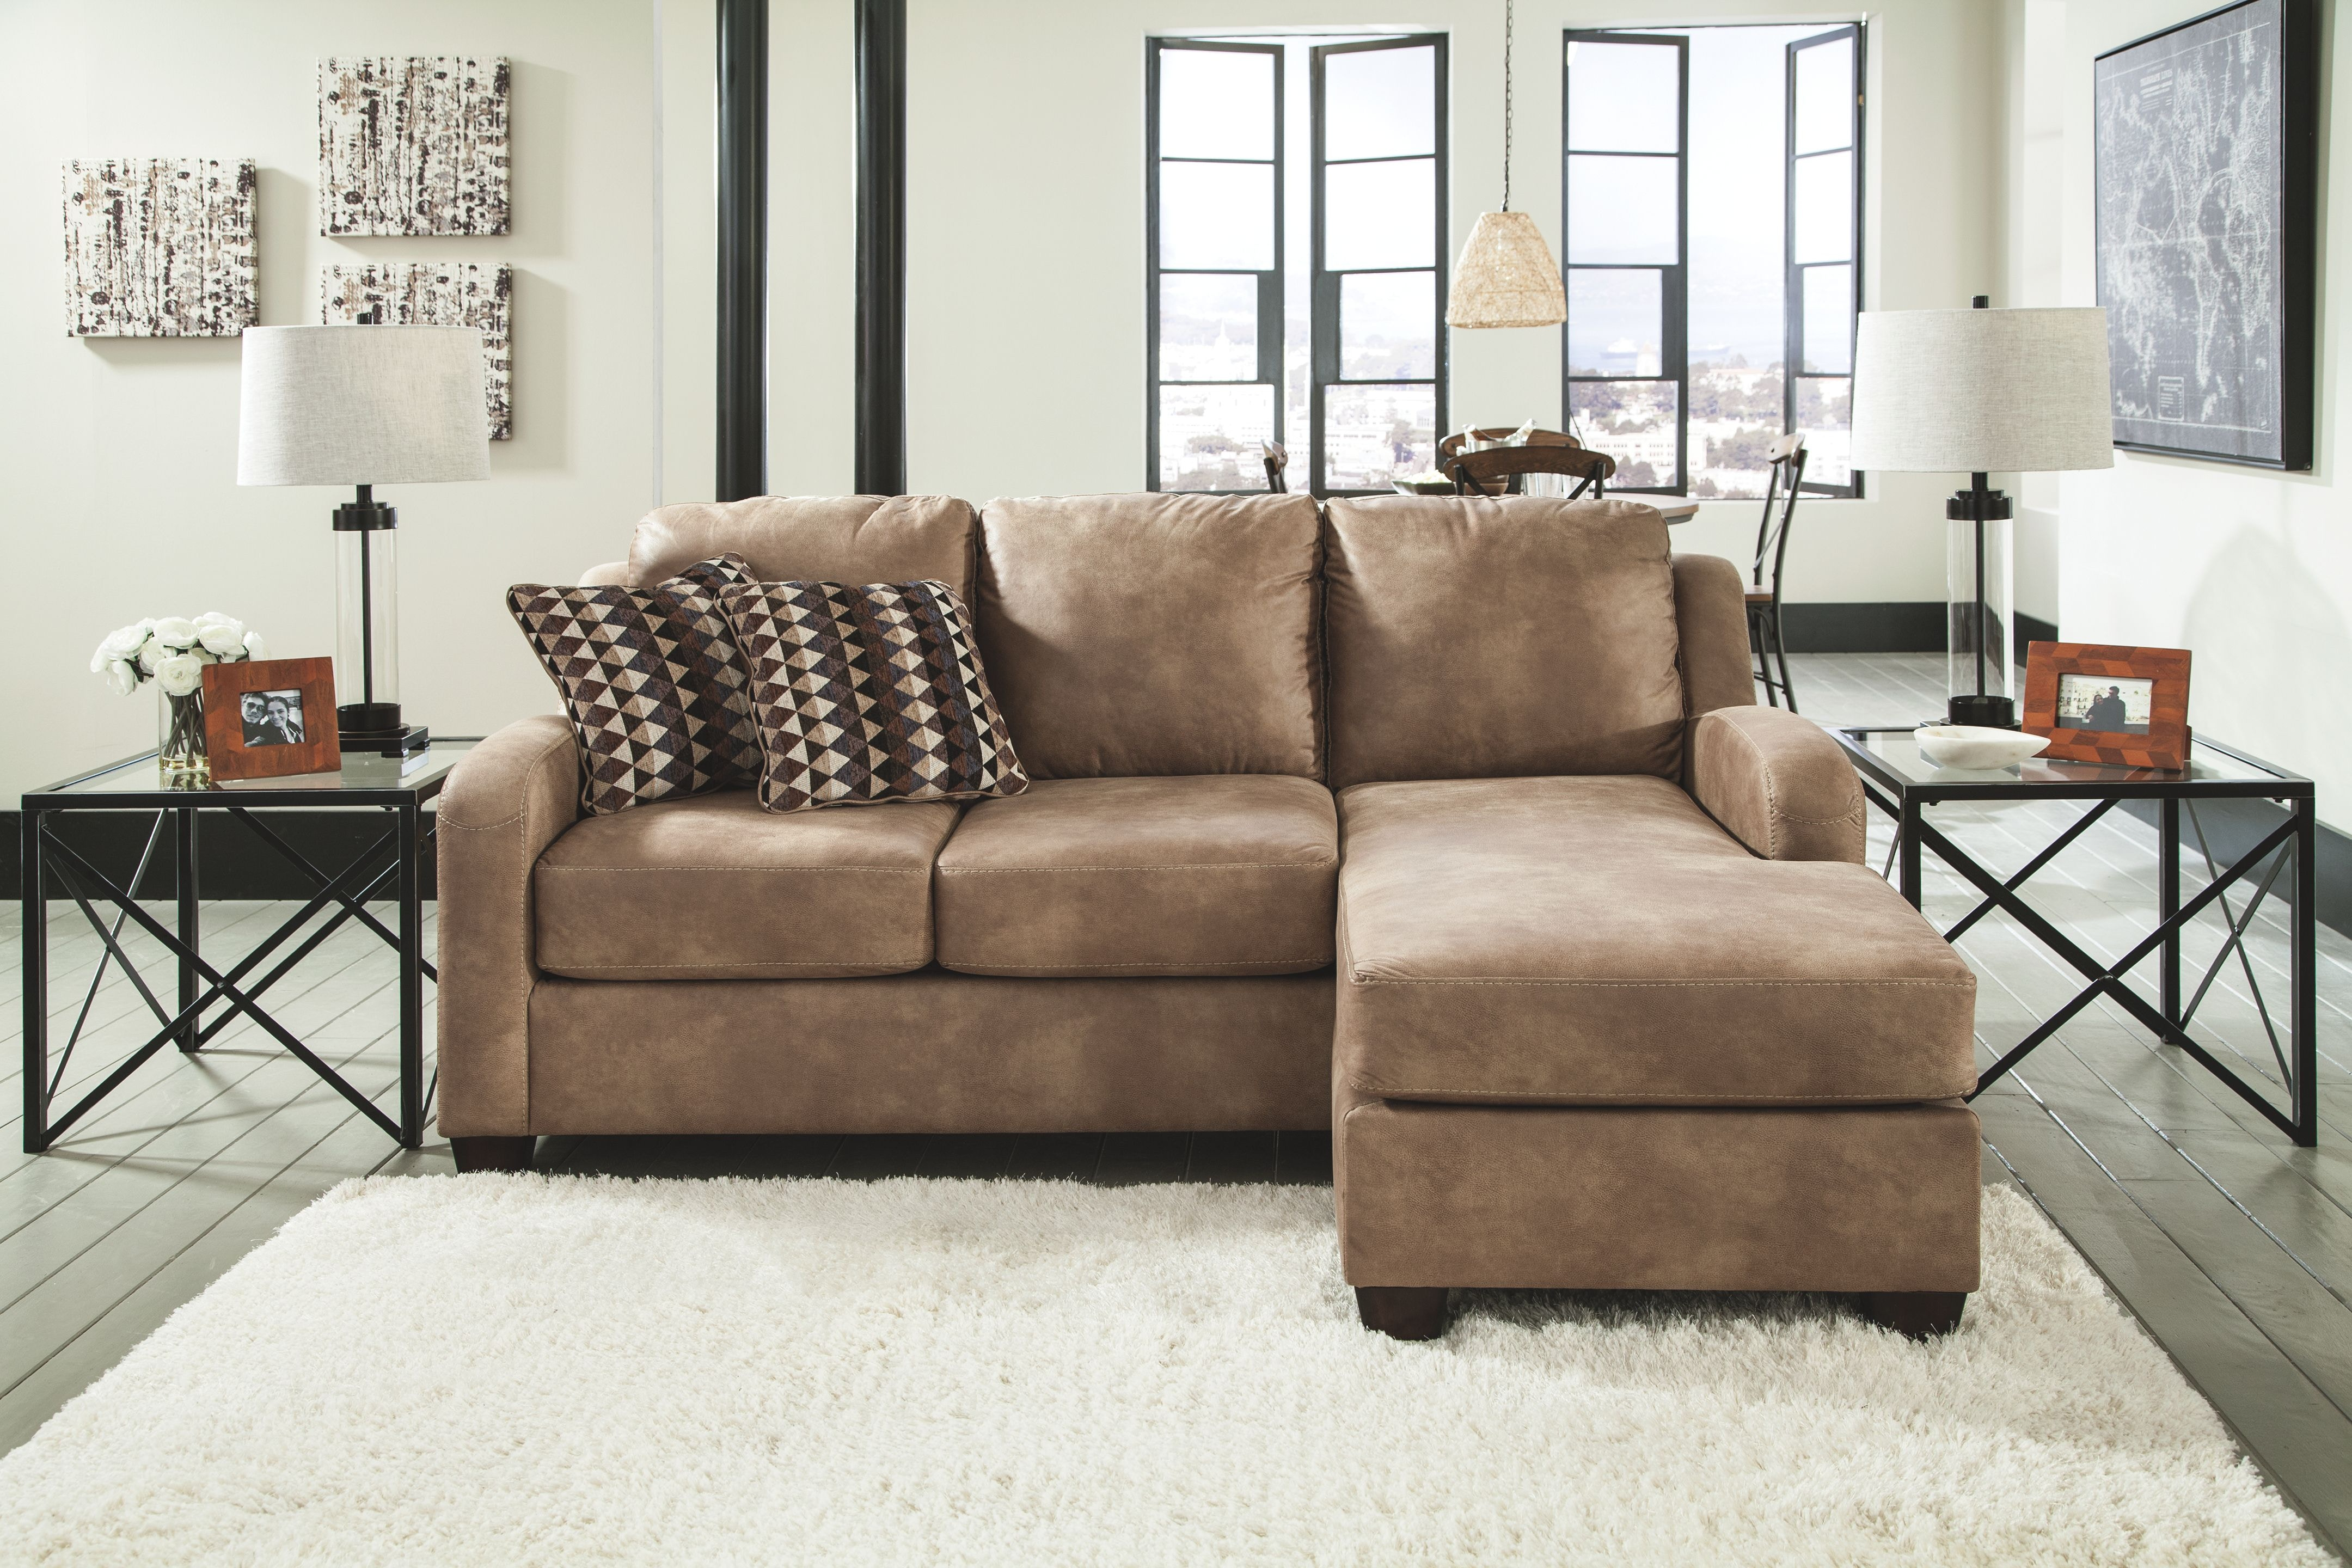 Signature Design By Ashley Living Room Sofa Chaise Available At Our Rh Tahans Com Clearance Outlet Uk Warehouse Cardiff